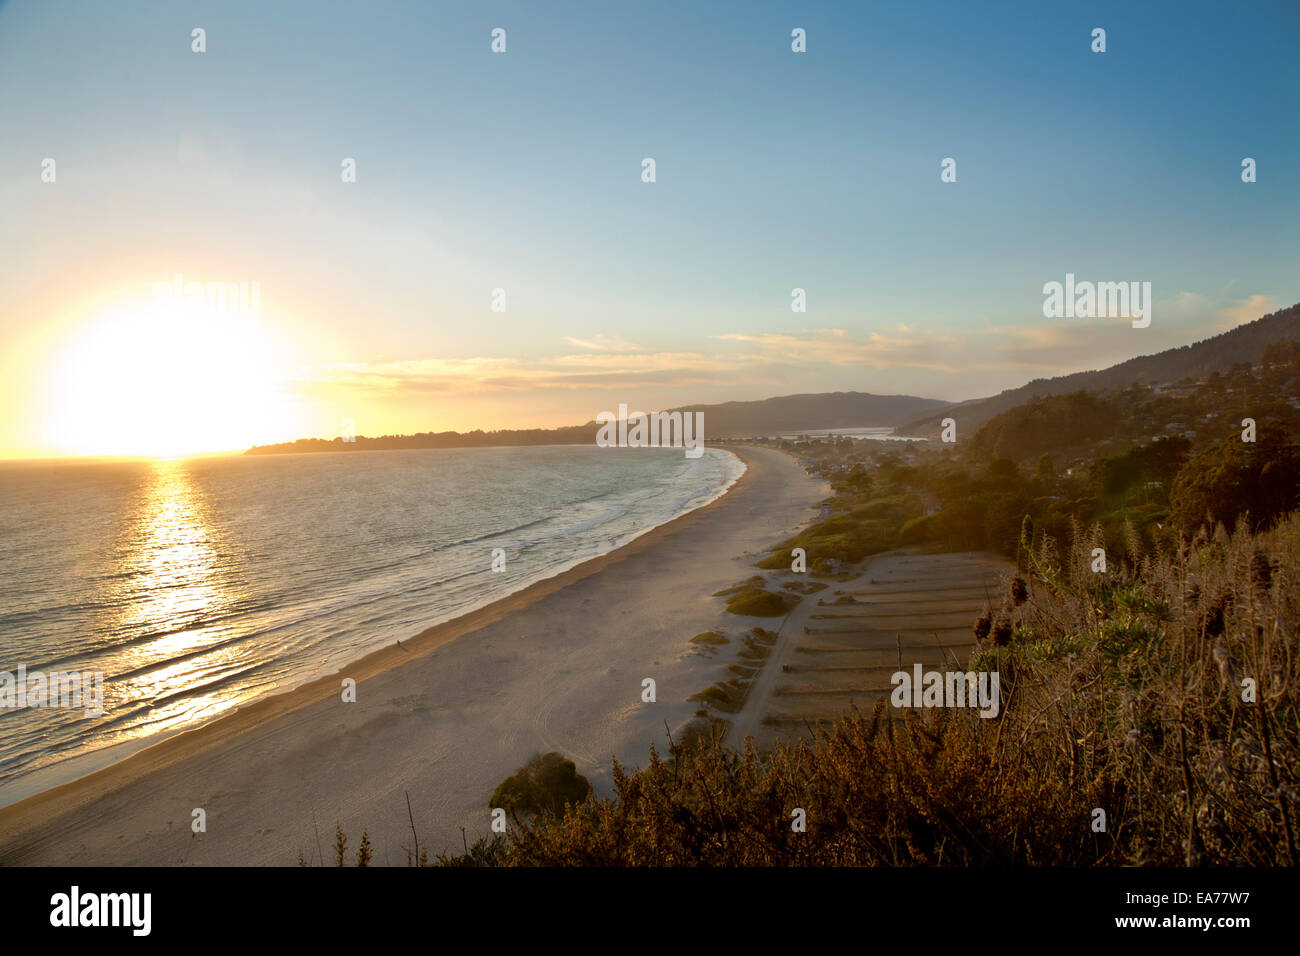 stinson beach dating Stinson beach is a great place for singles to live many of the residents are unmarried and enjoy an active lifestyle people tend to have higher income than average according to public data on this city.